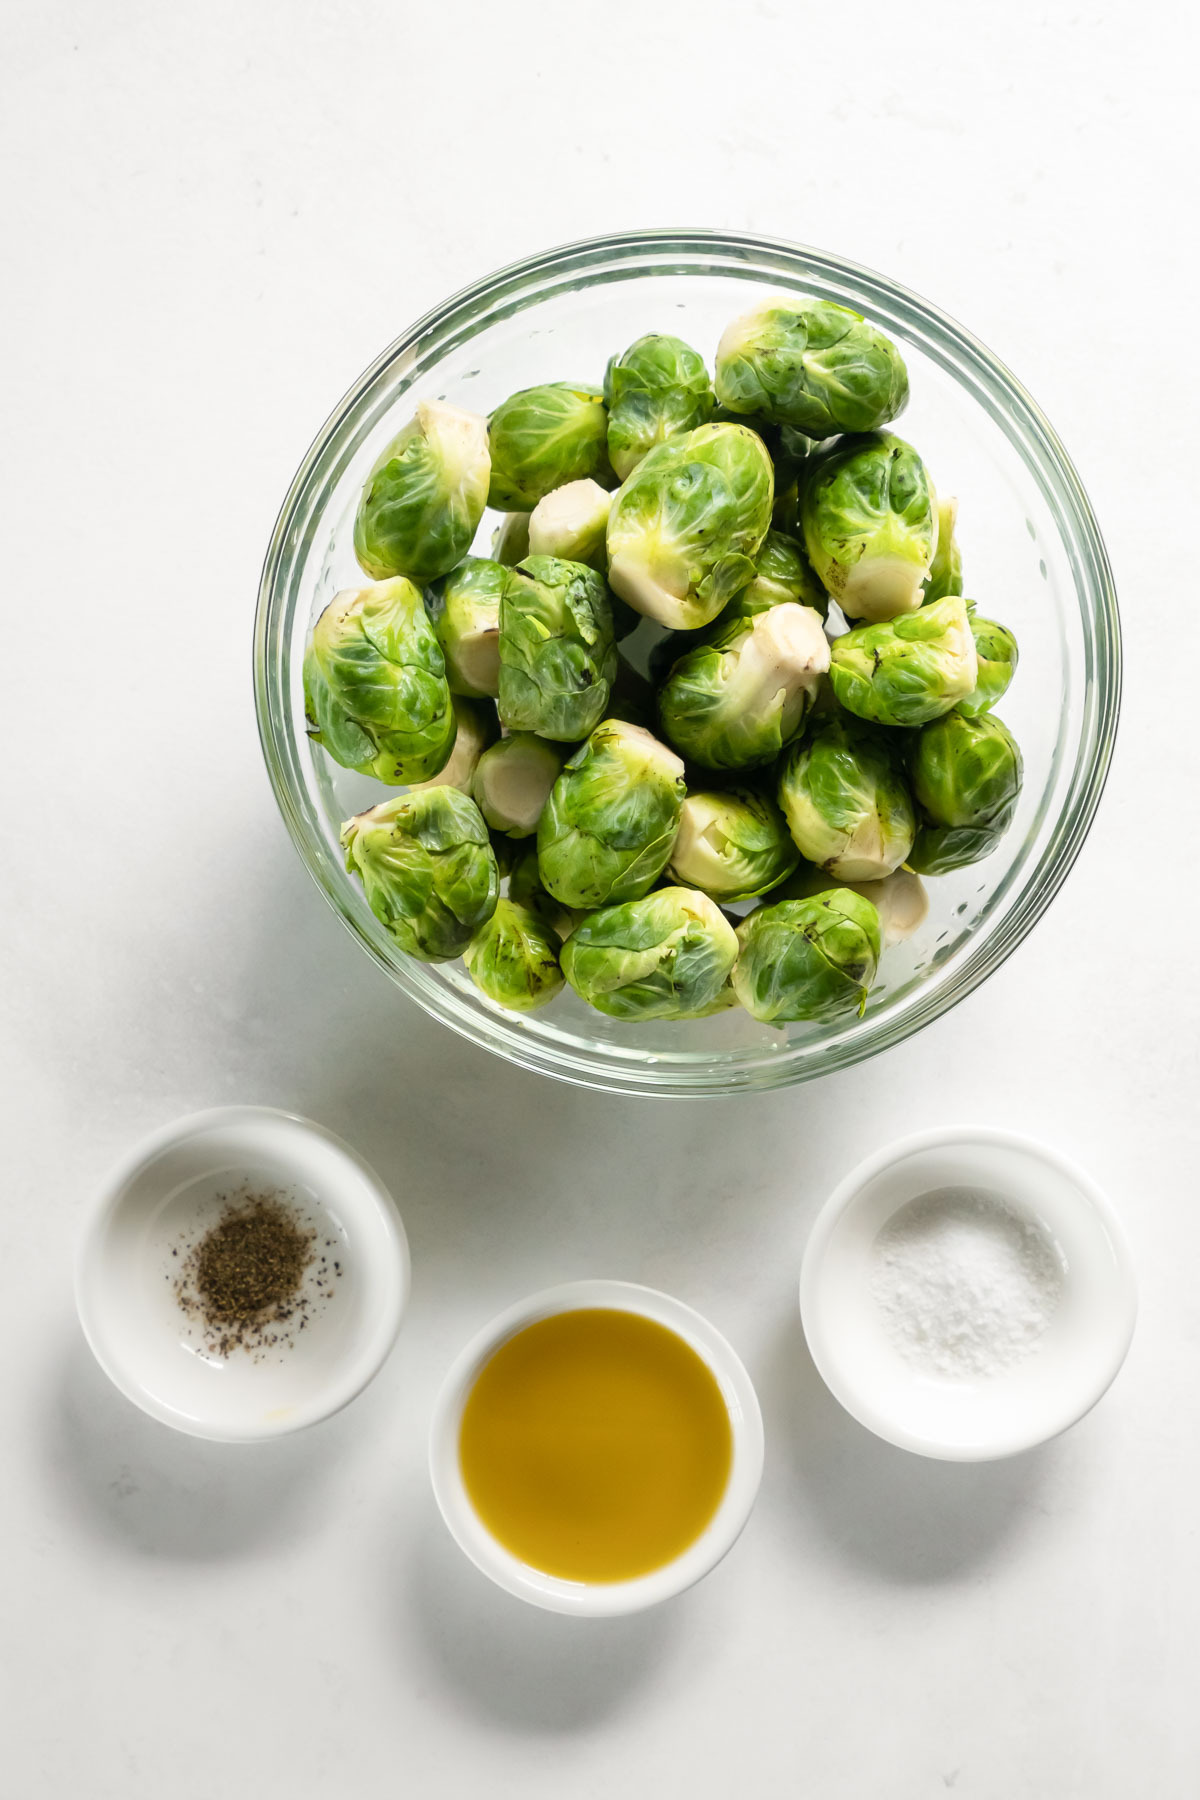 ingredients for roasted brussels sprouts recipe